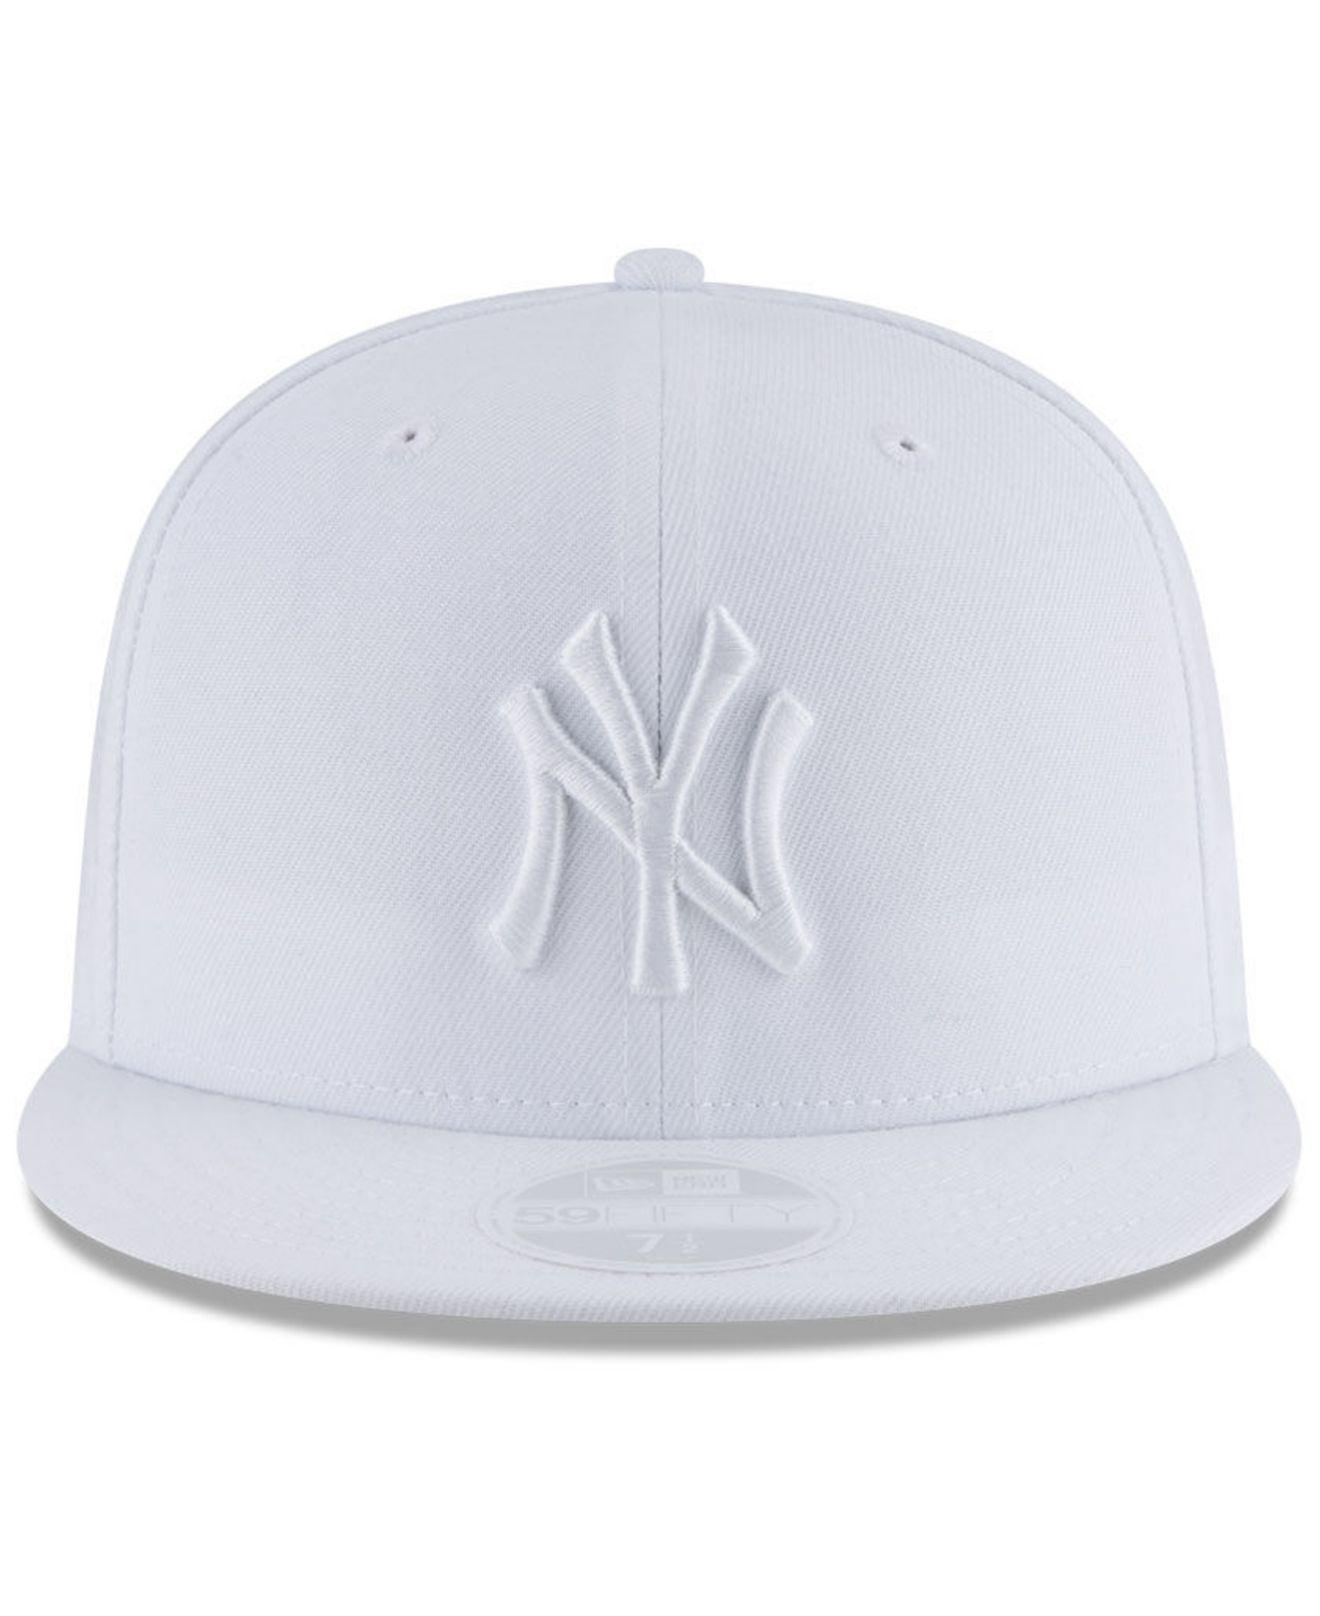 Lyst - KTZ New York Yankees White Out 59fifty Fitted Cap in White for Men af5e7c4e3b27